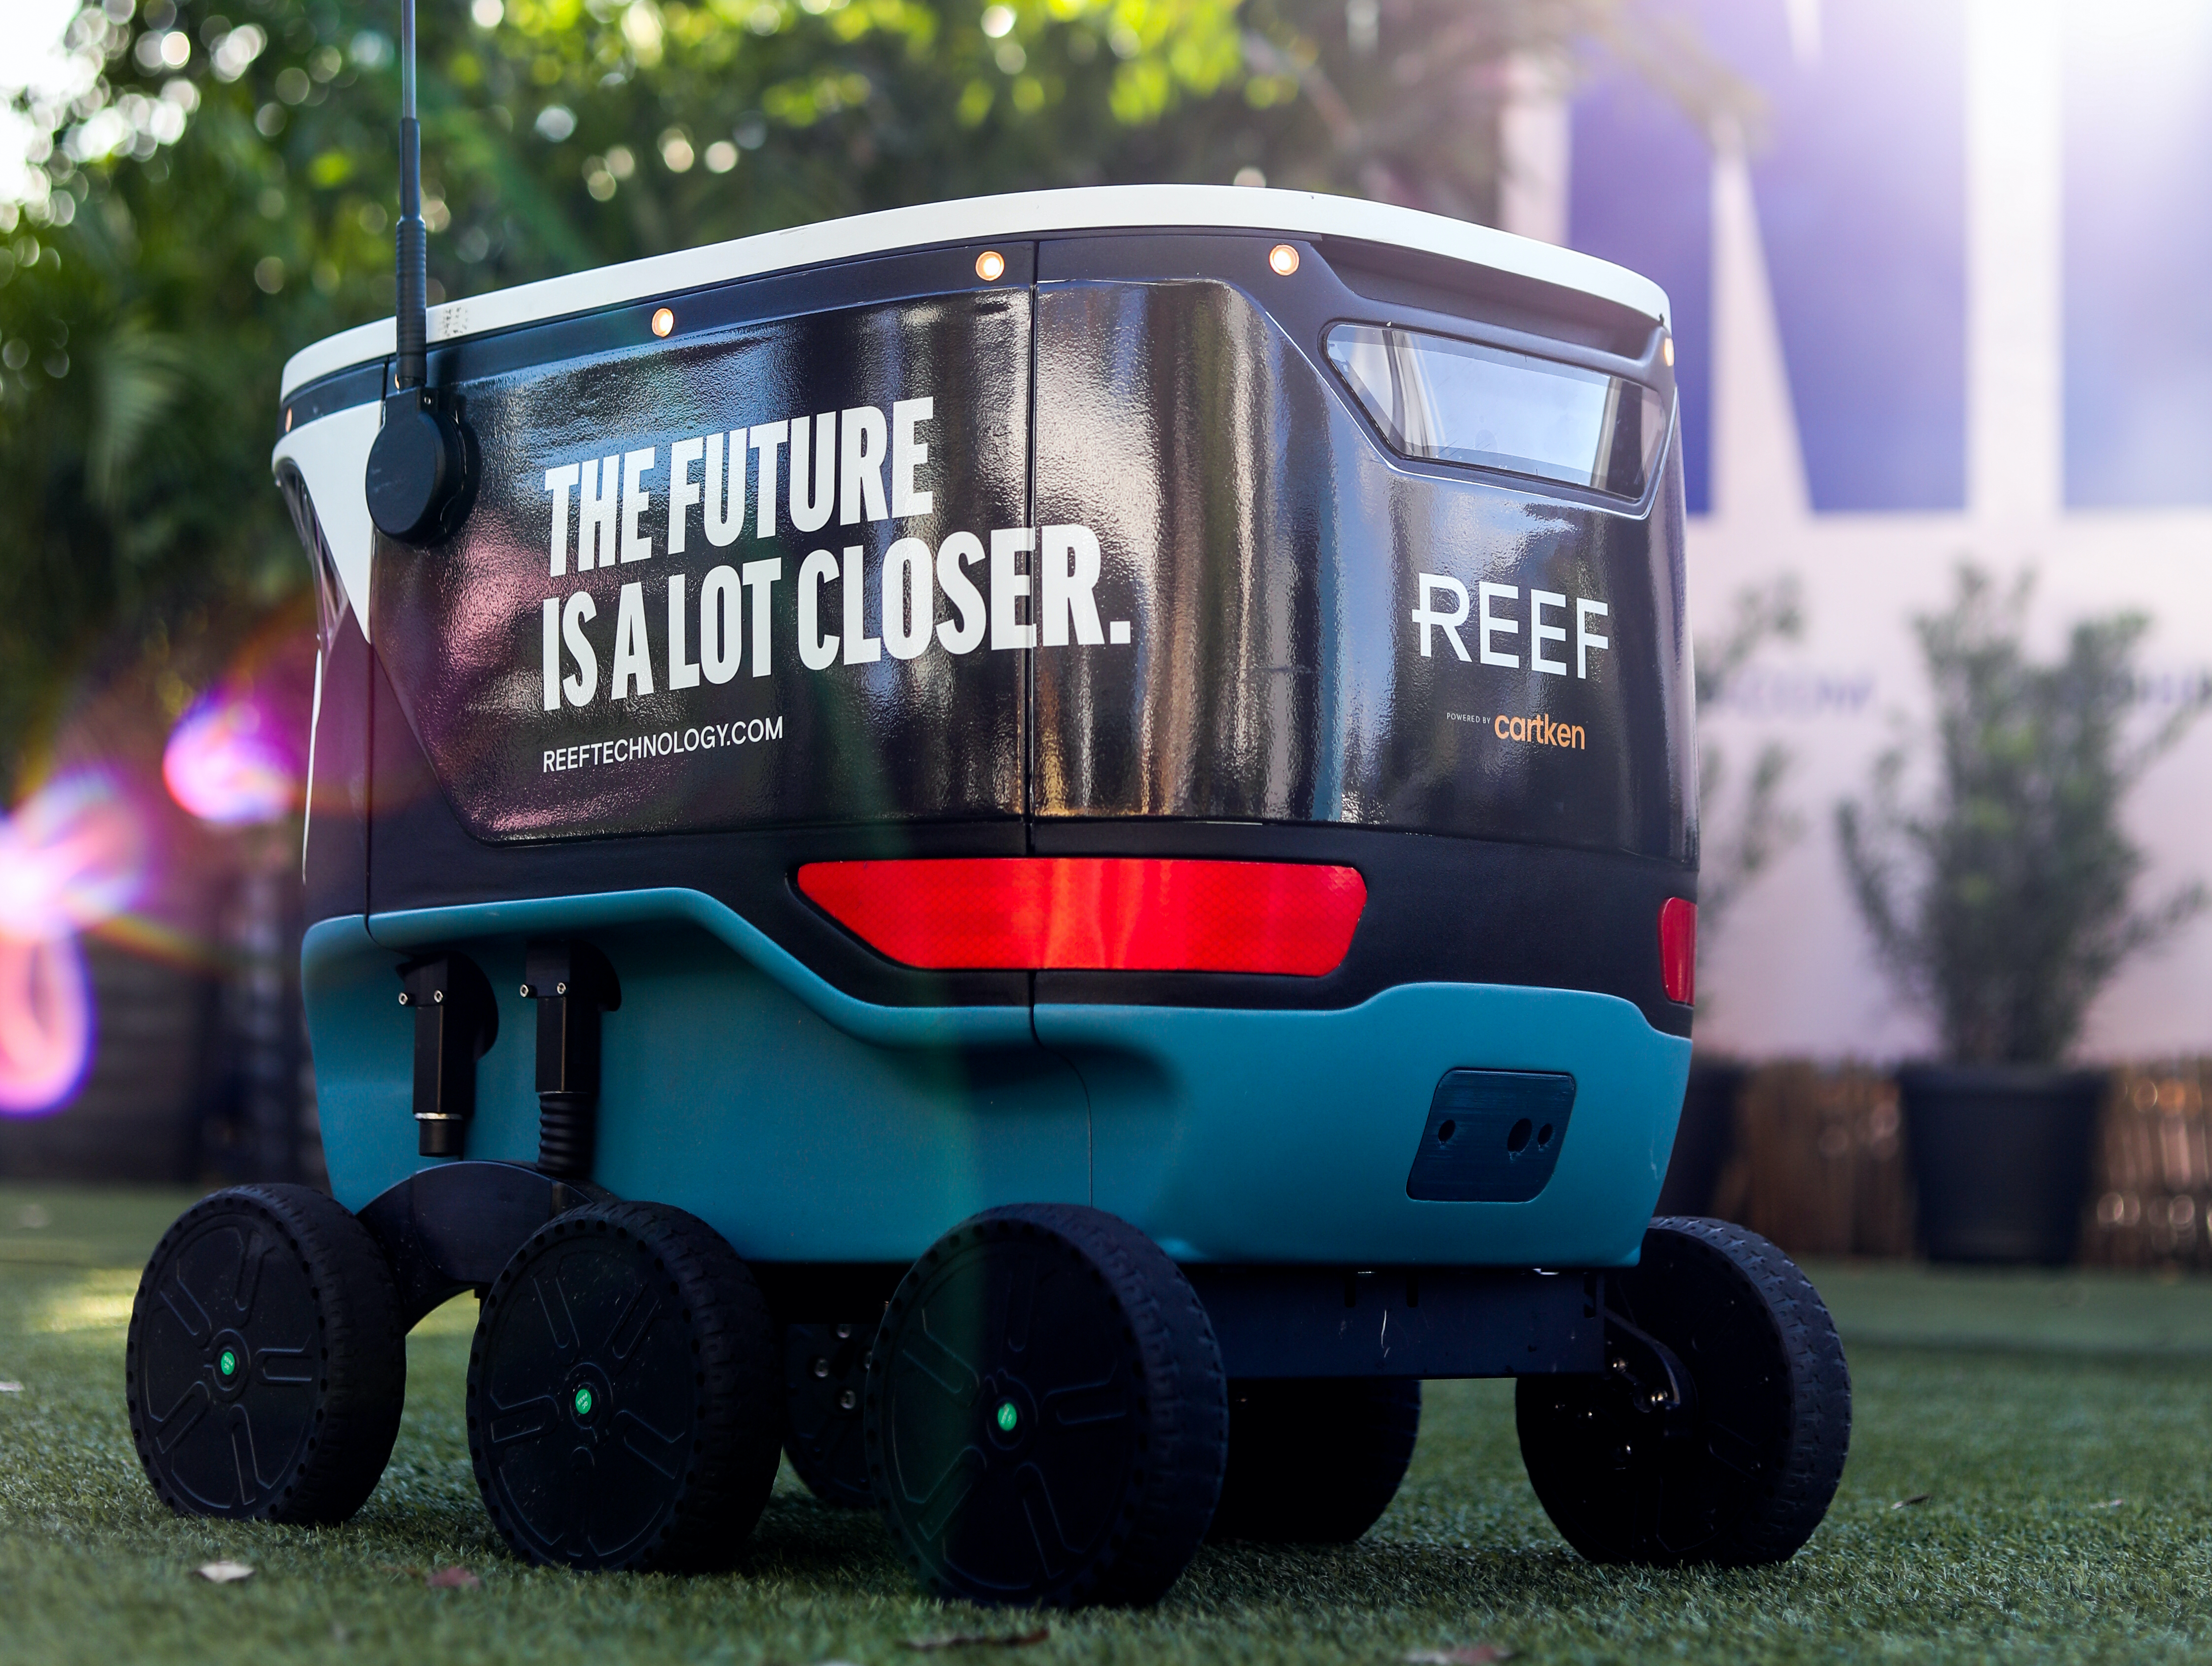 Google spinoff Cartken and REEF Technologies launch Miami's first delivery robots